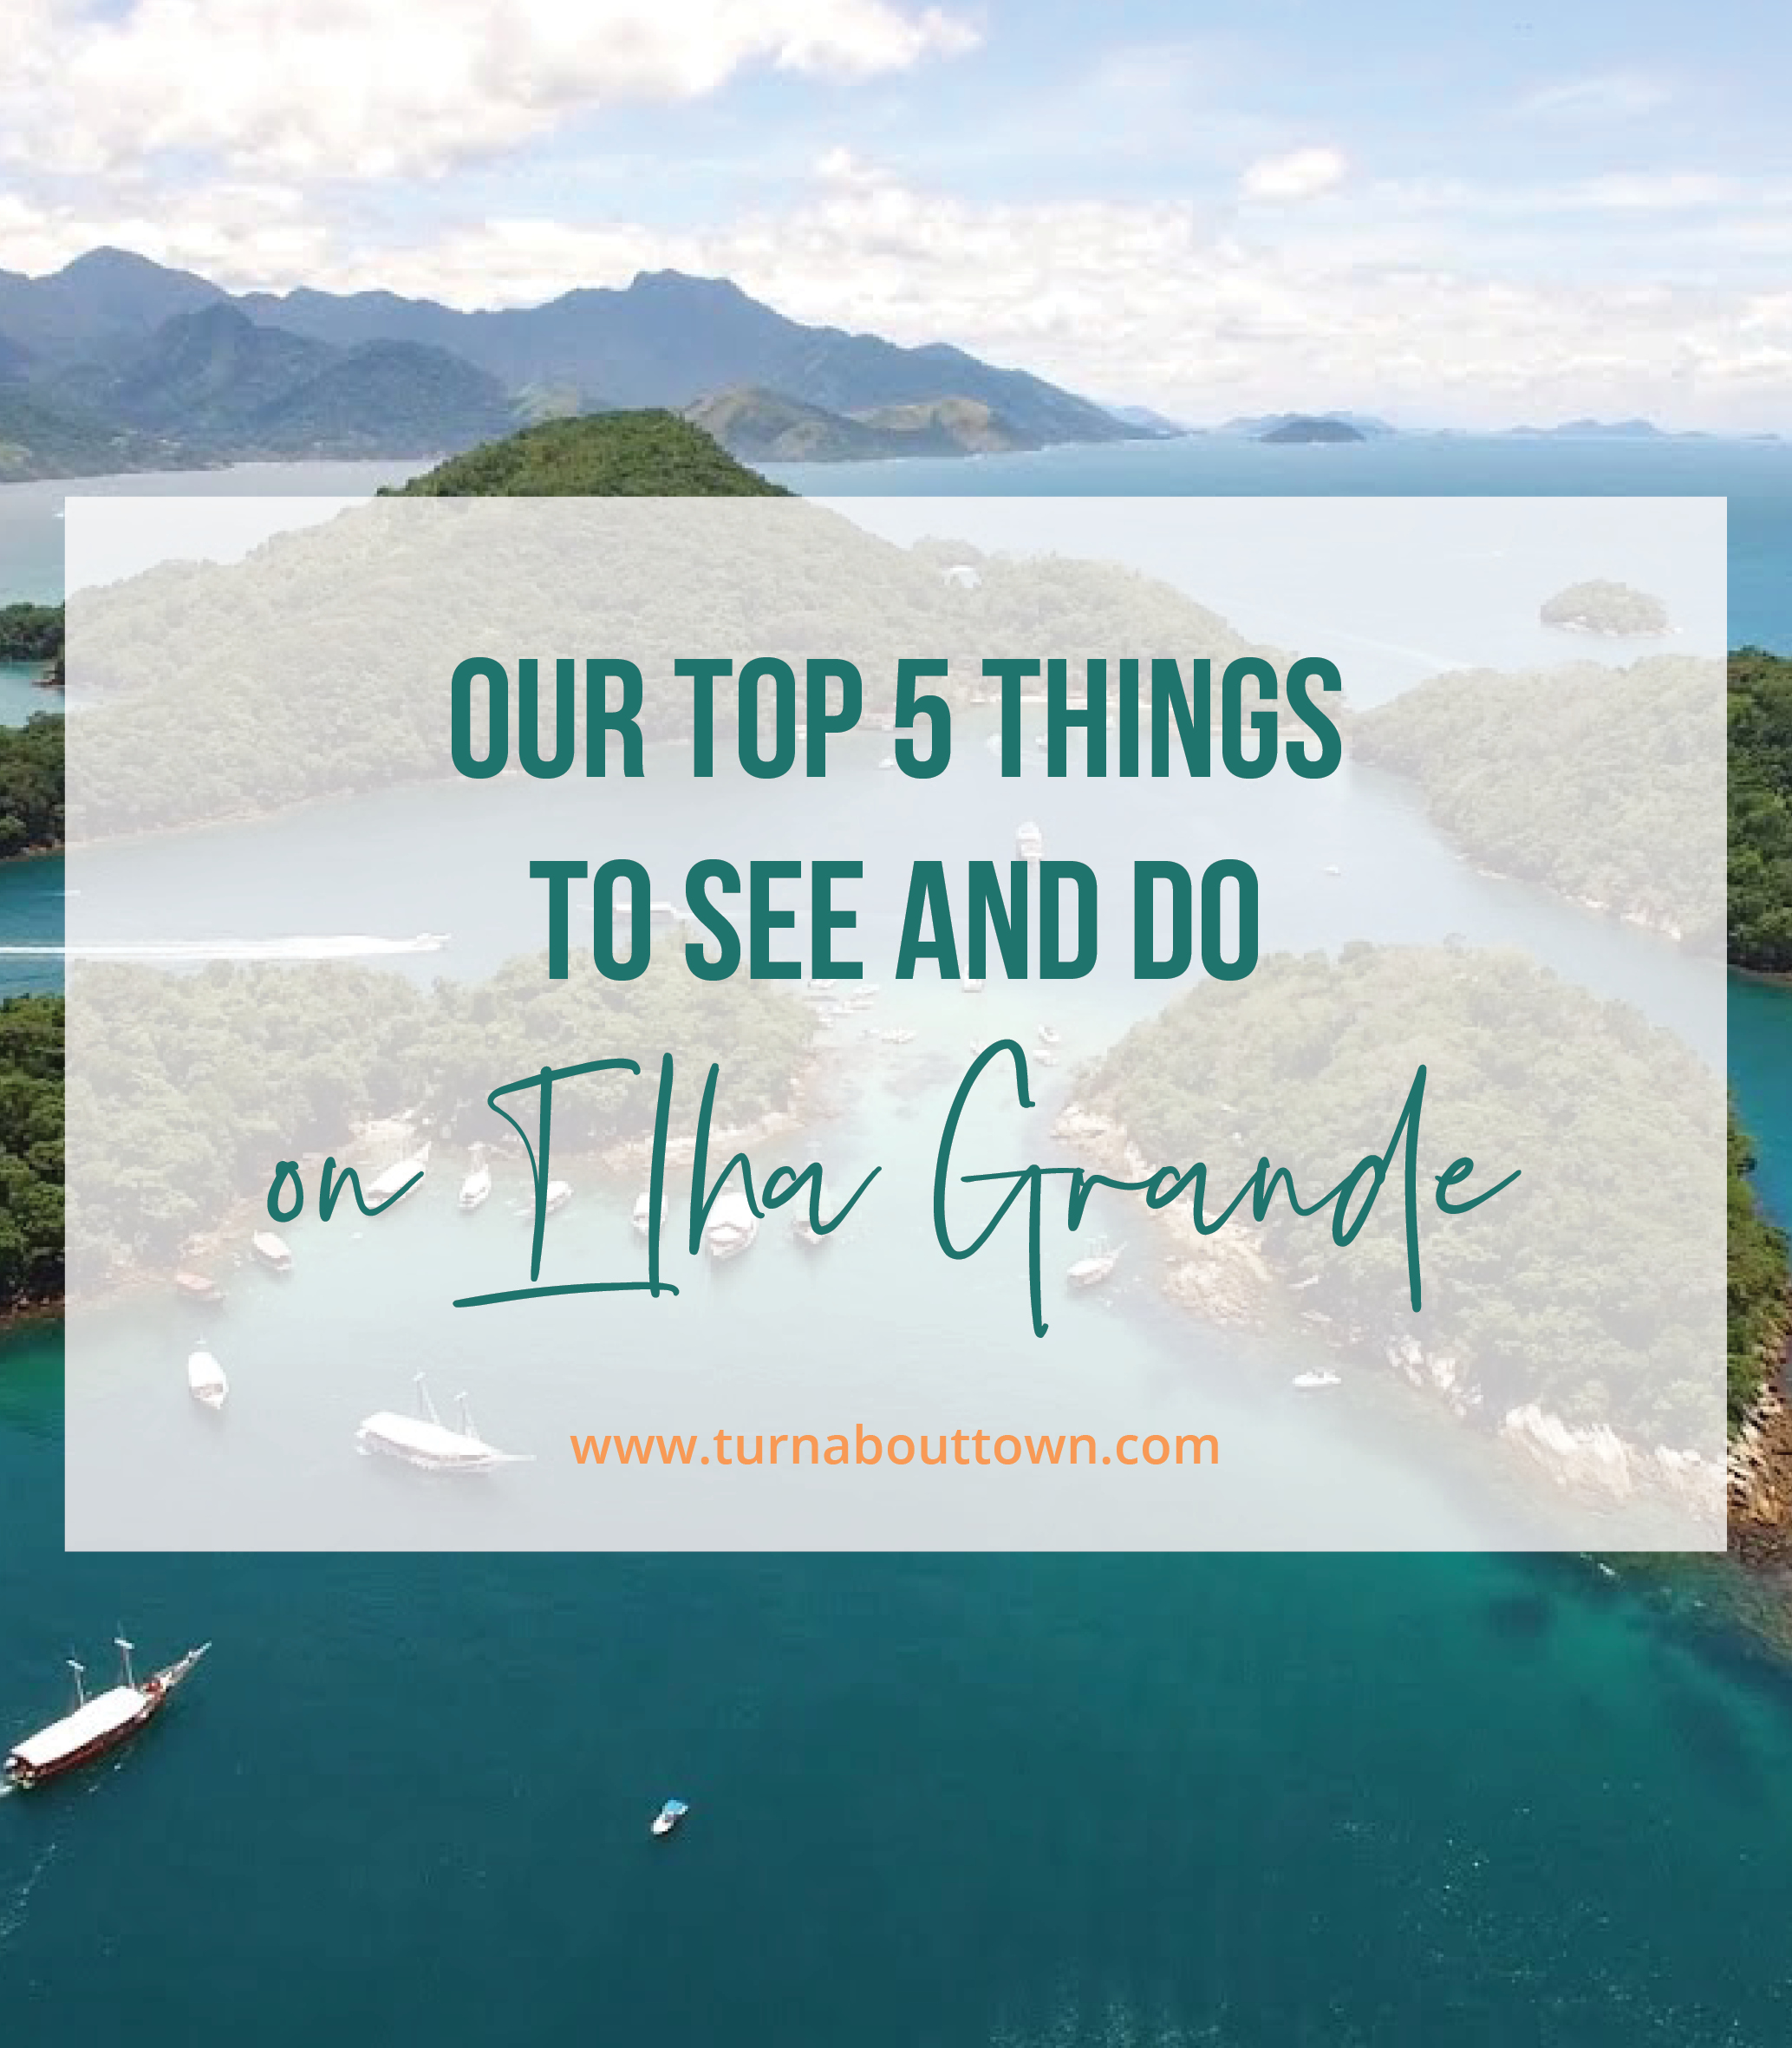 Our Top 5 Things to See and Do in Ilha Grande, Brazil